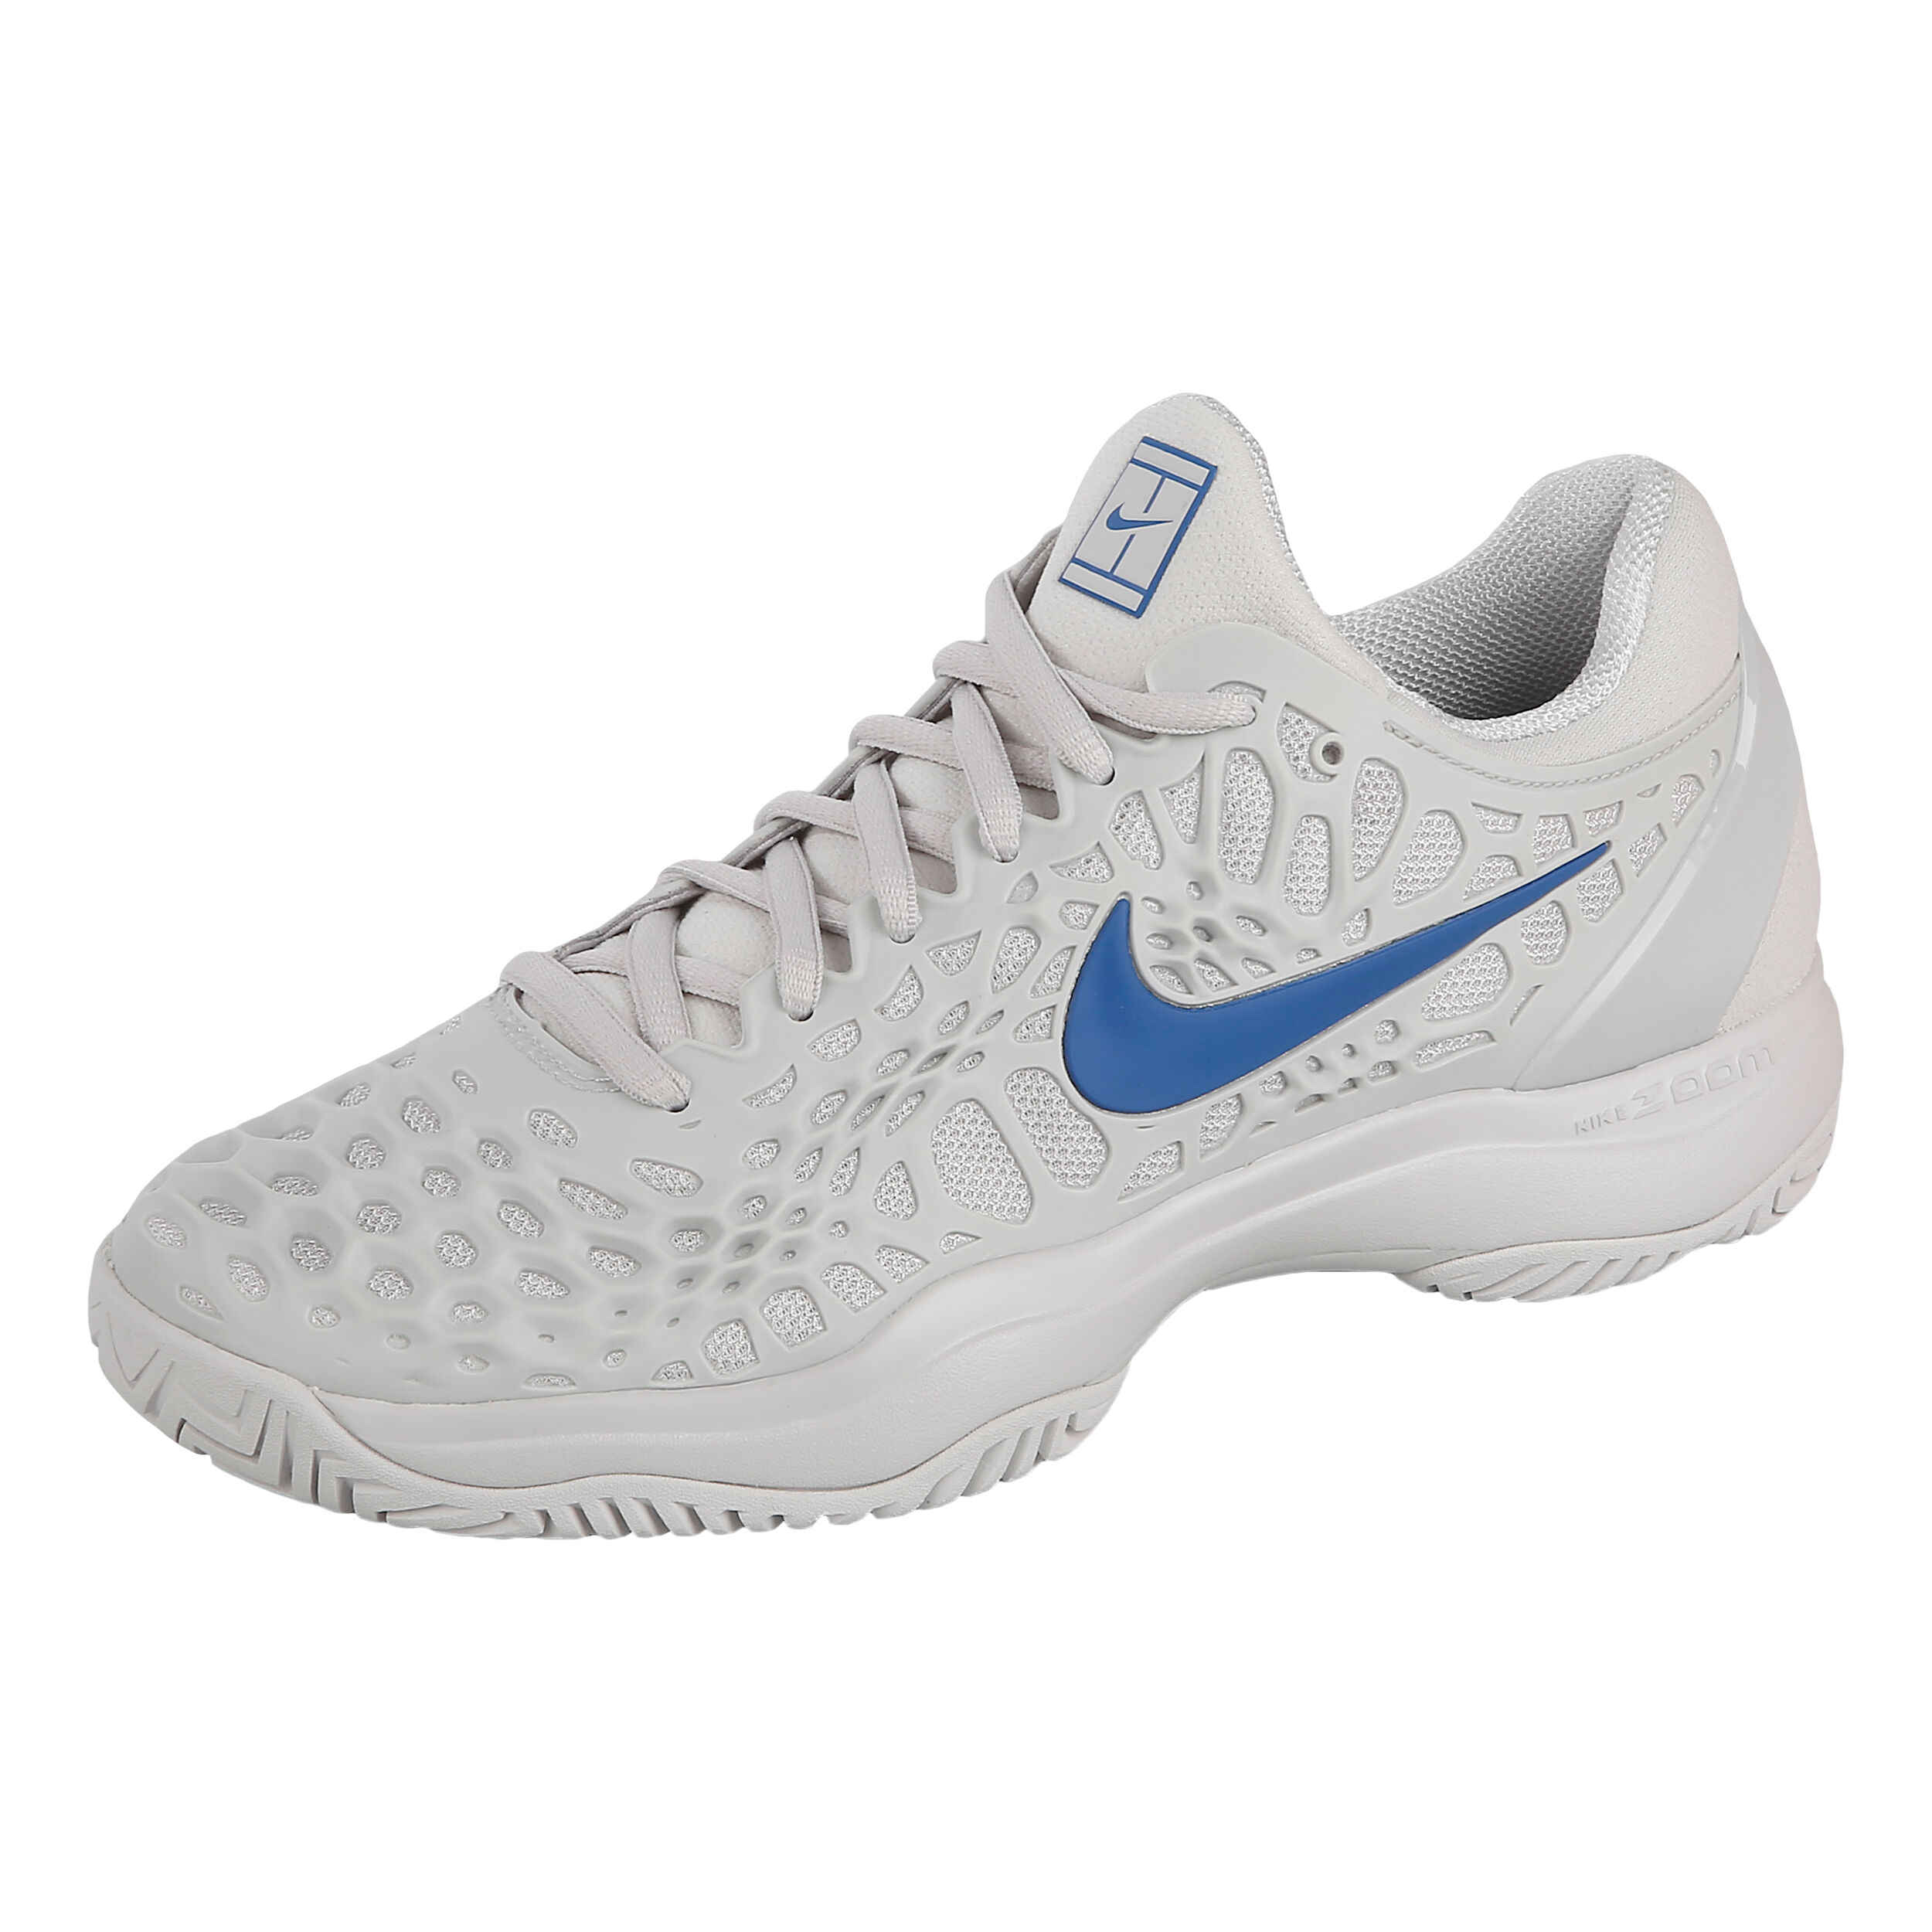 Chaussure Nike Terrain Cage Tout ClairBlanc Zoom Gris 3 Hommes 6fIY7bygv